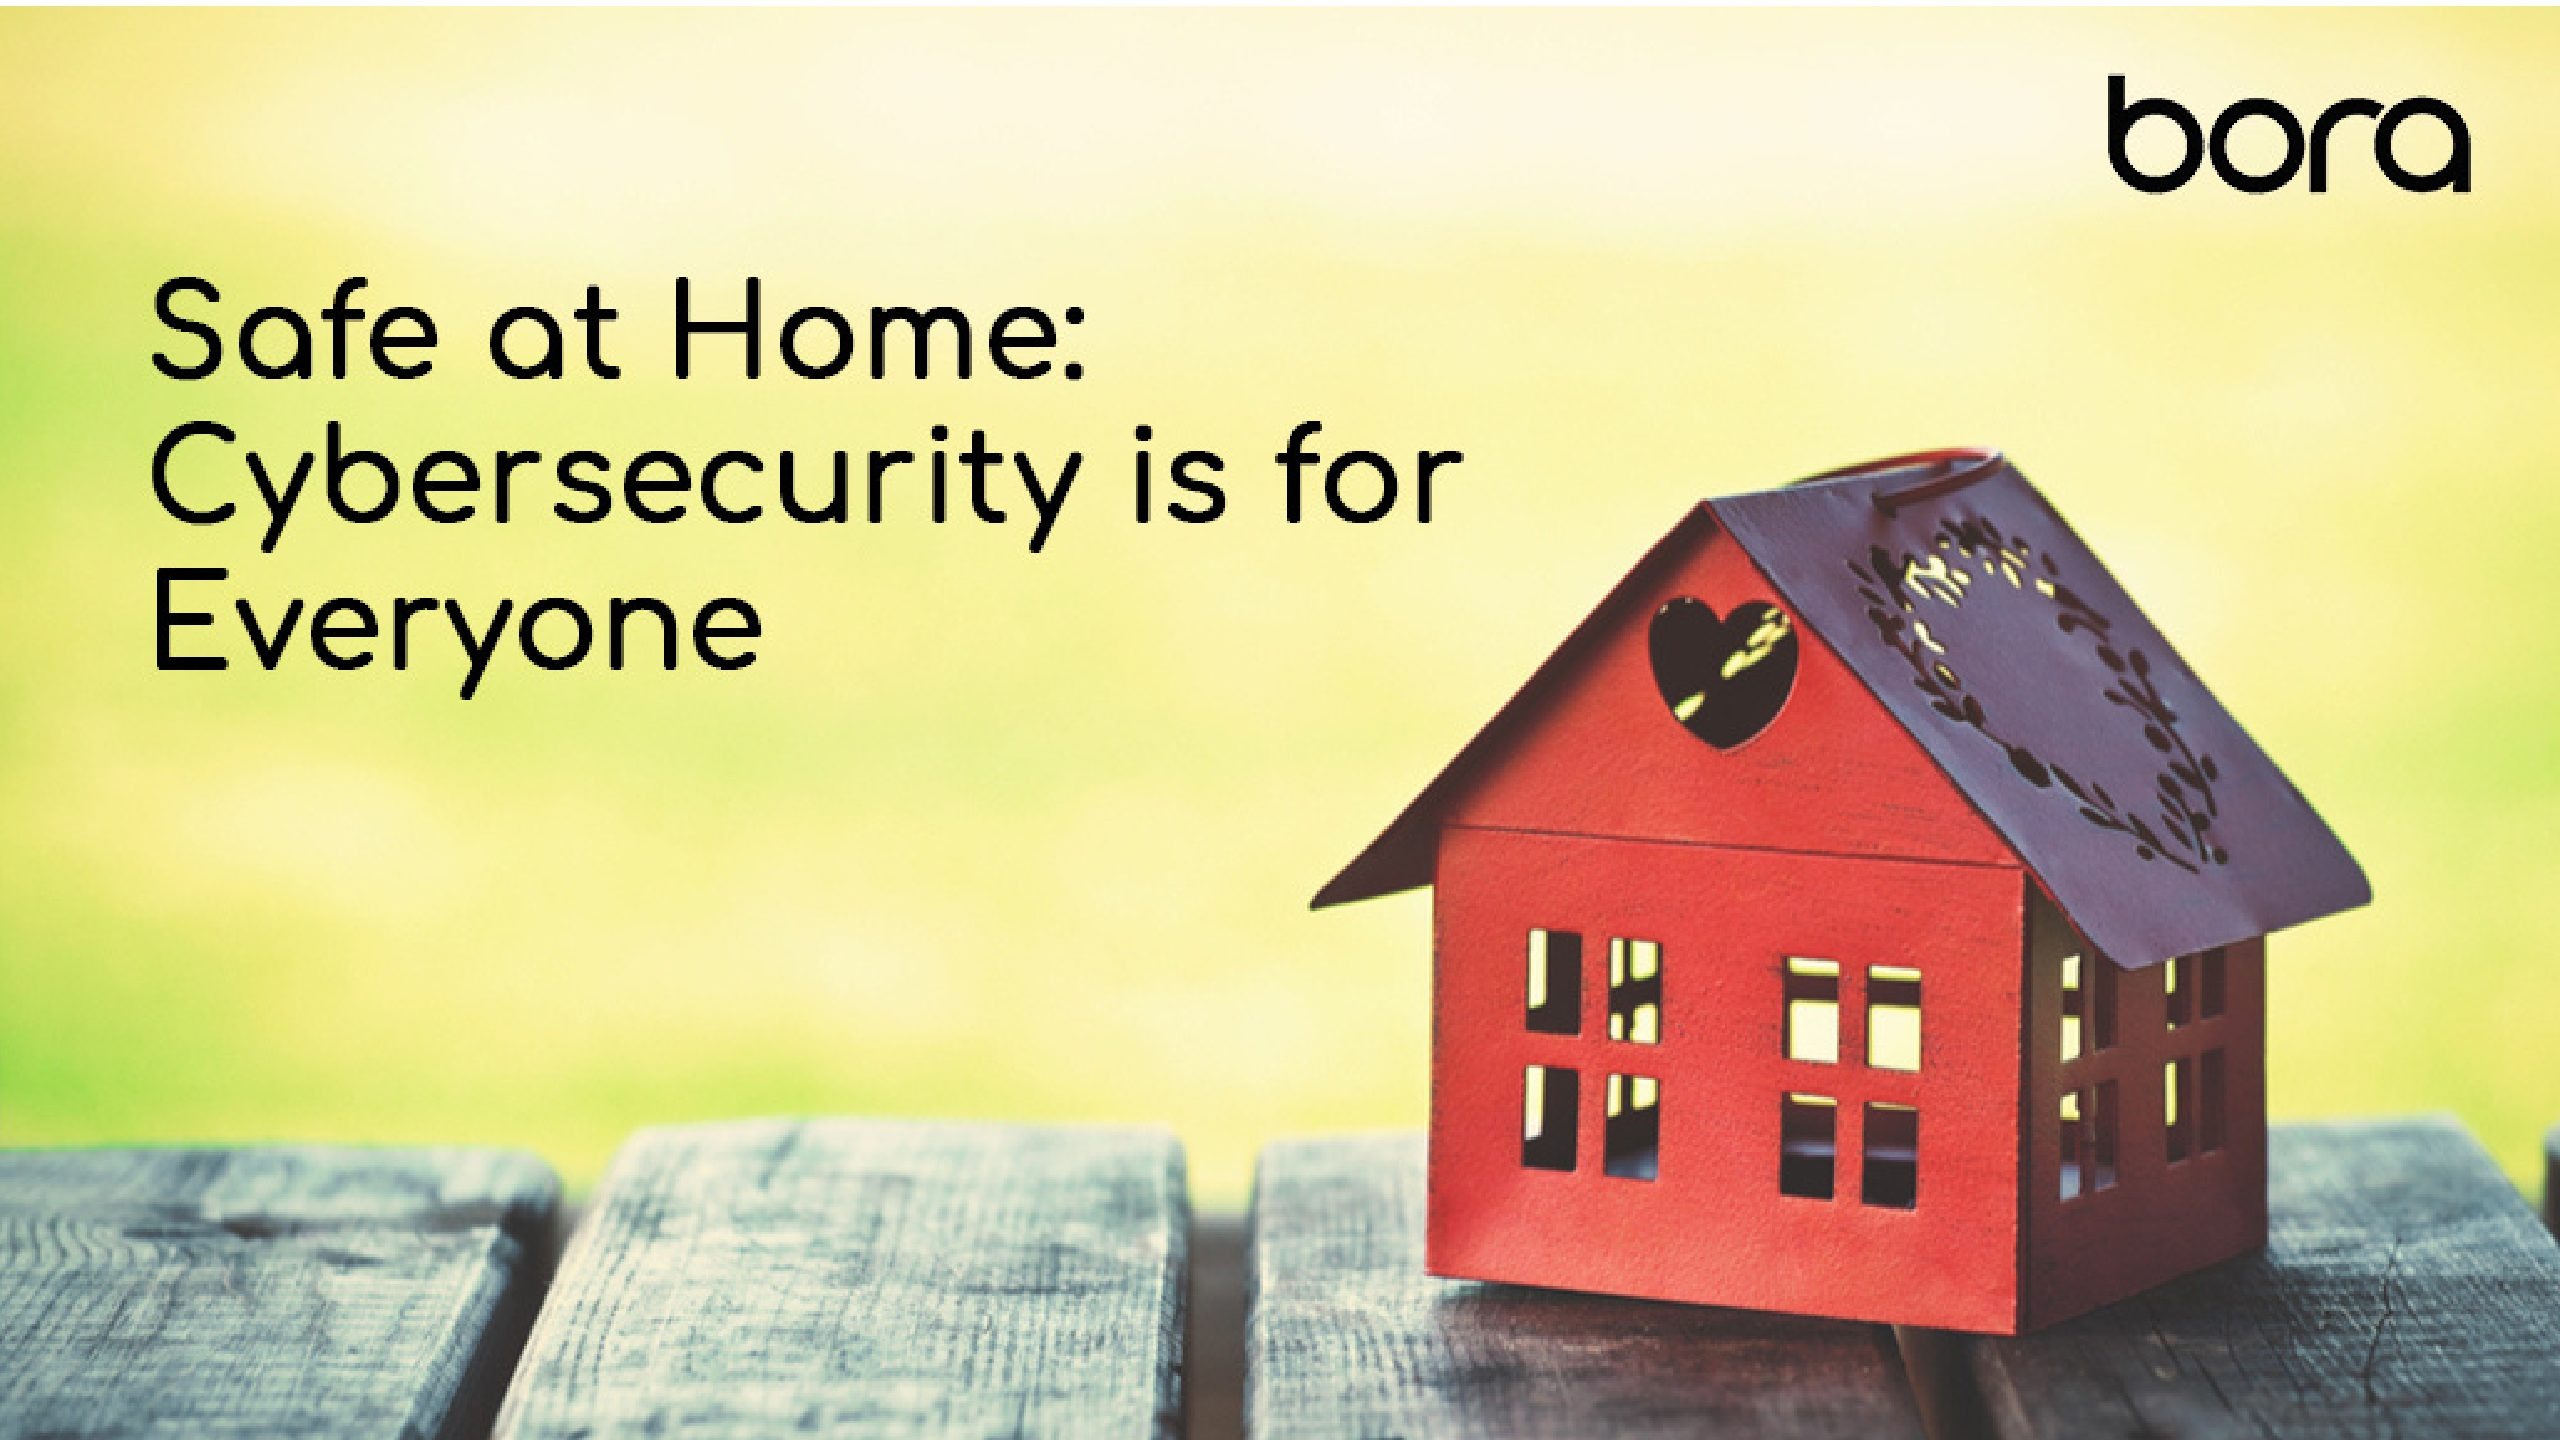 Safe at Home: Cybersecurity is for Everyone